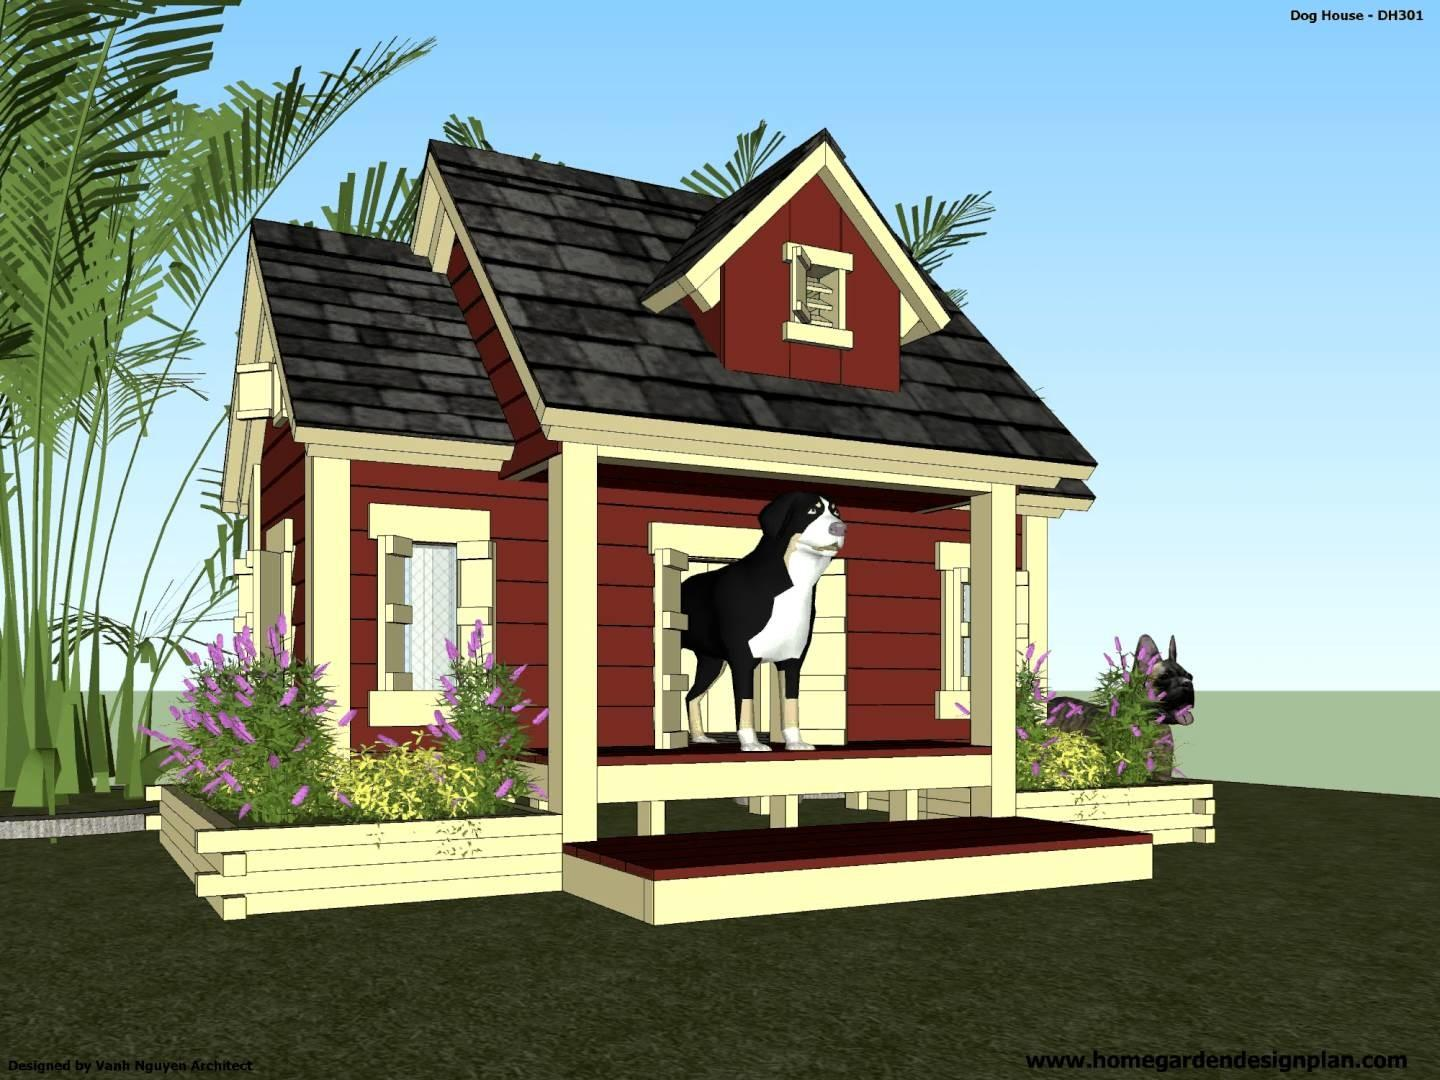 Dh301 Build Insulated Dog House